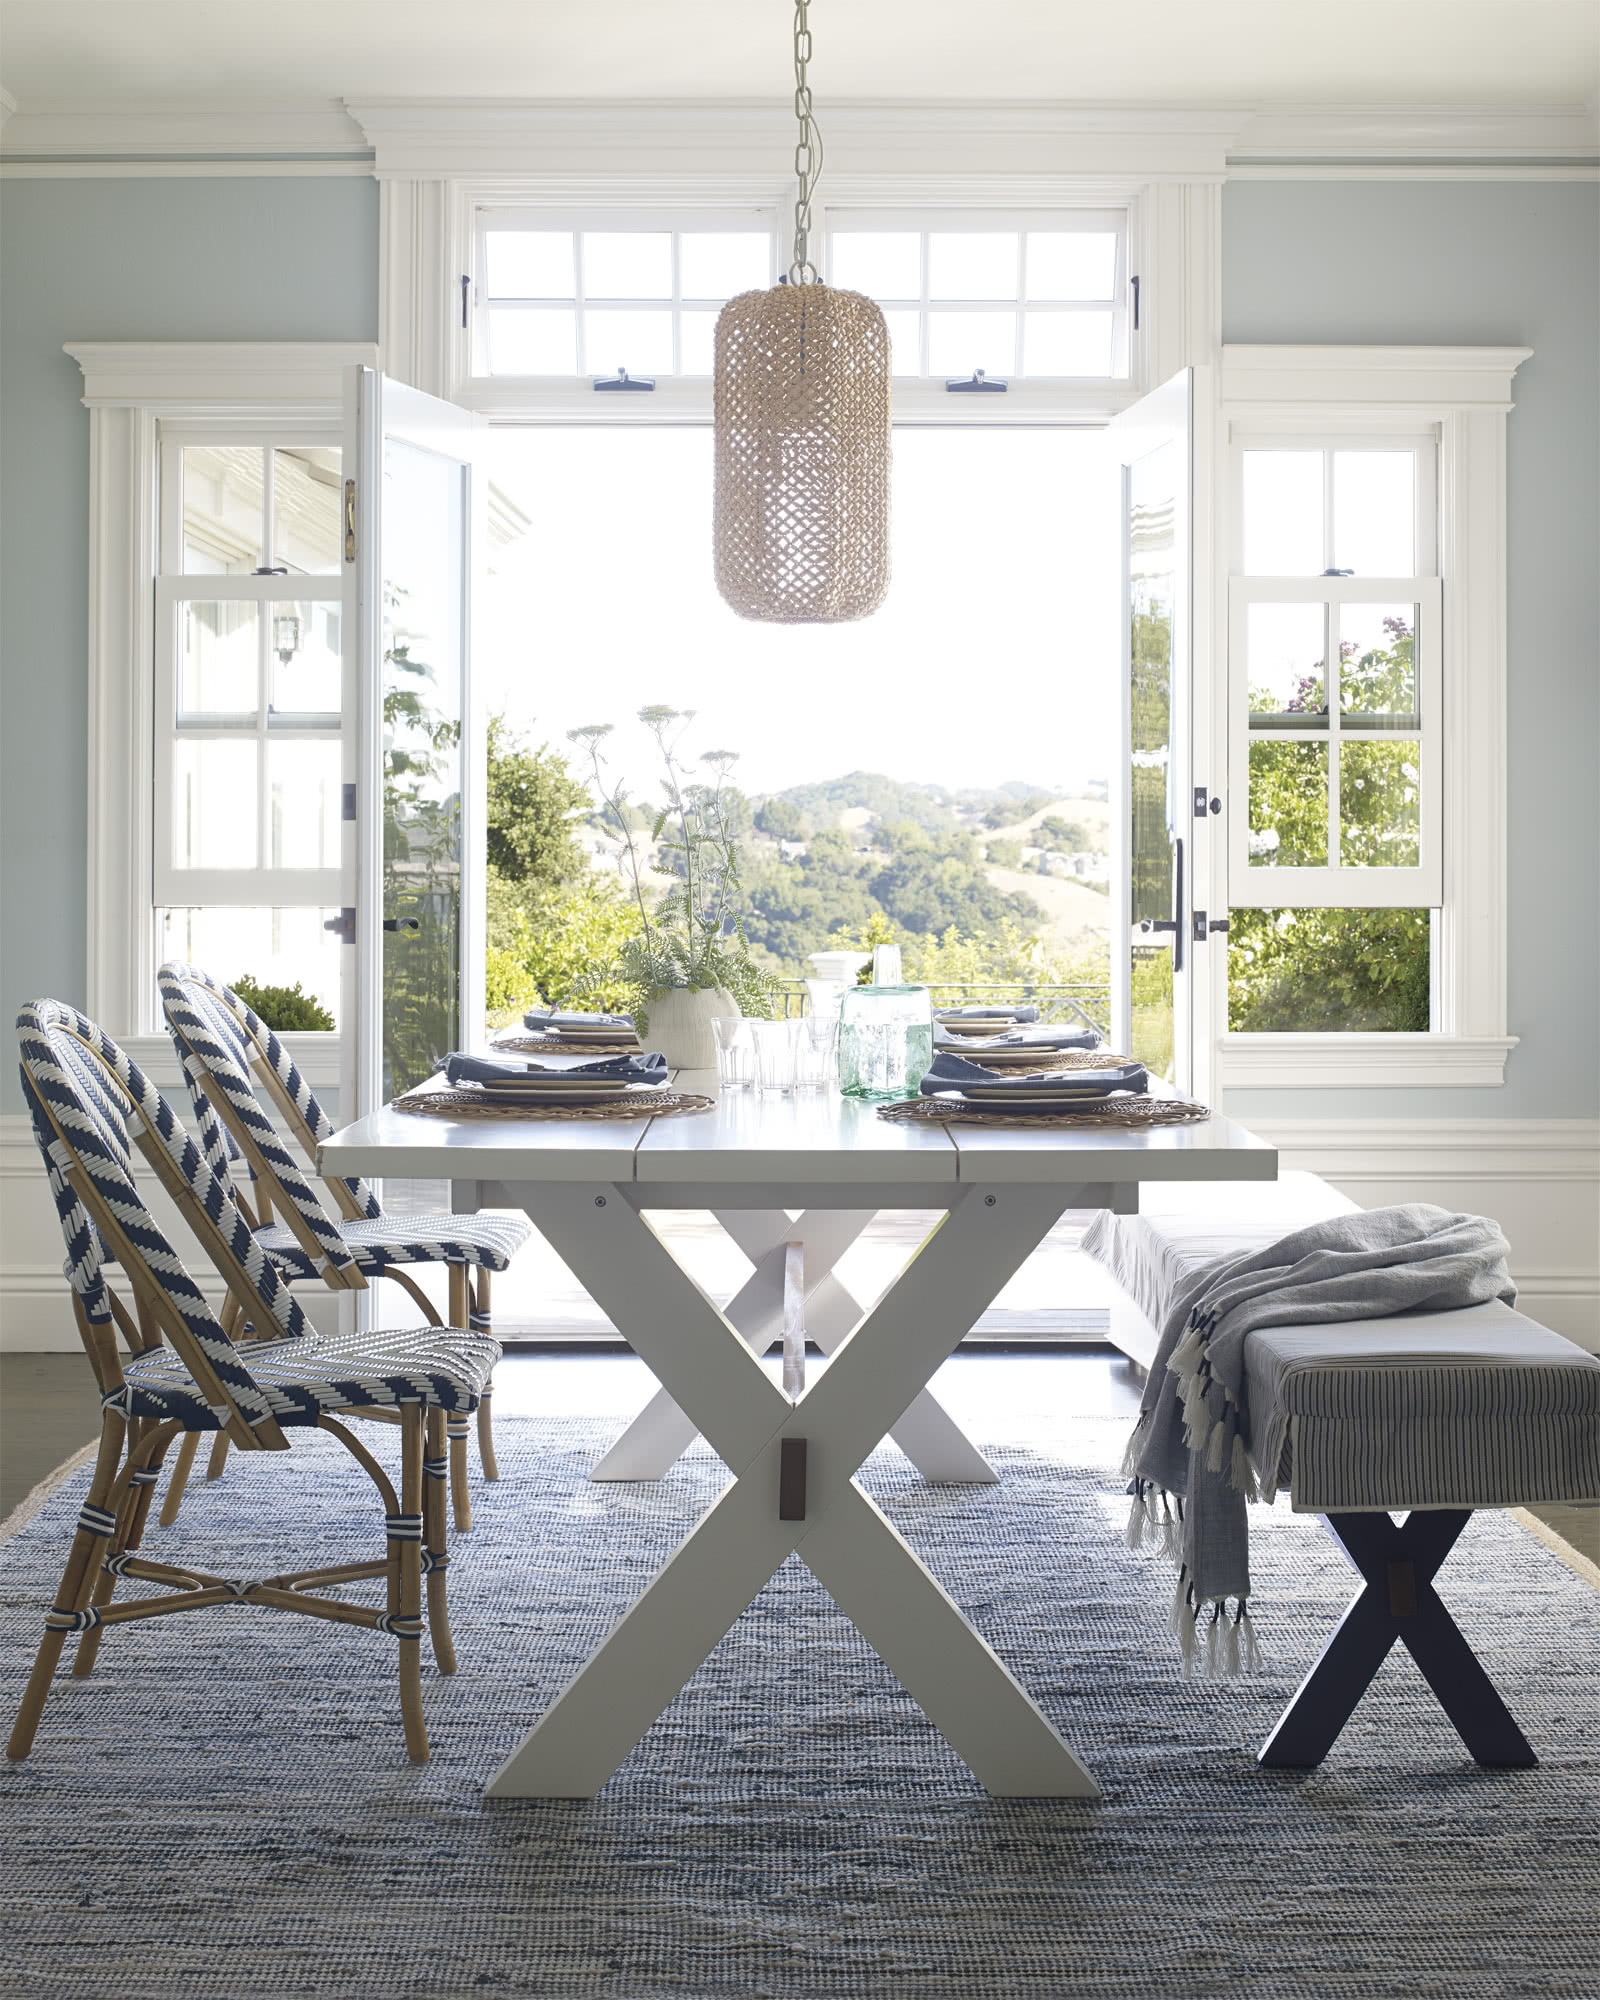 California Dining Table Serena Lily & Serena And Lily Dining Chairs - Dining room ideas